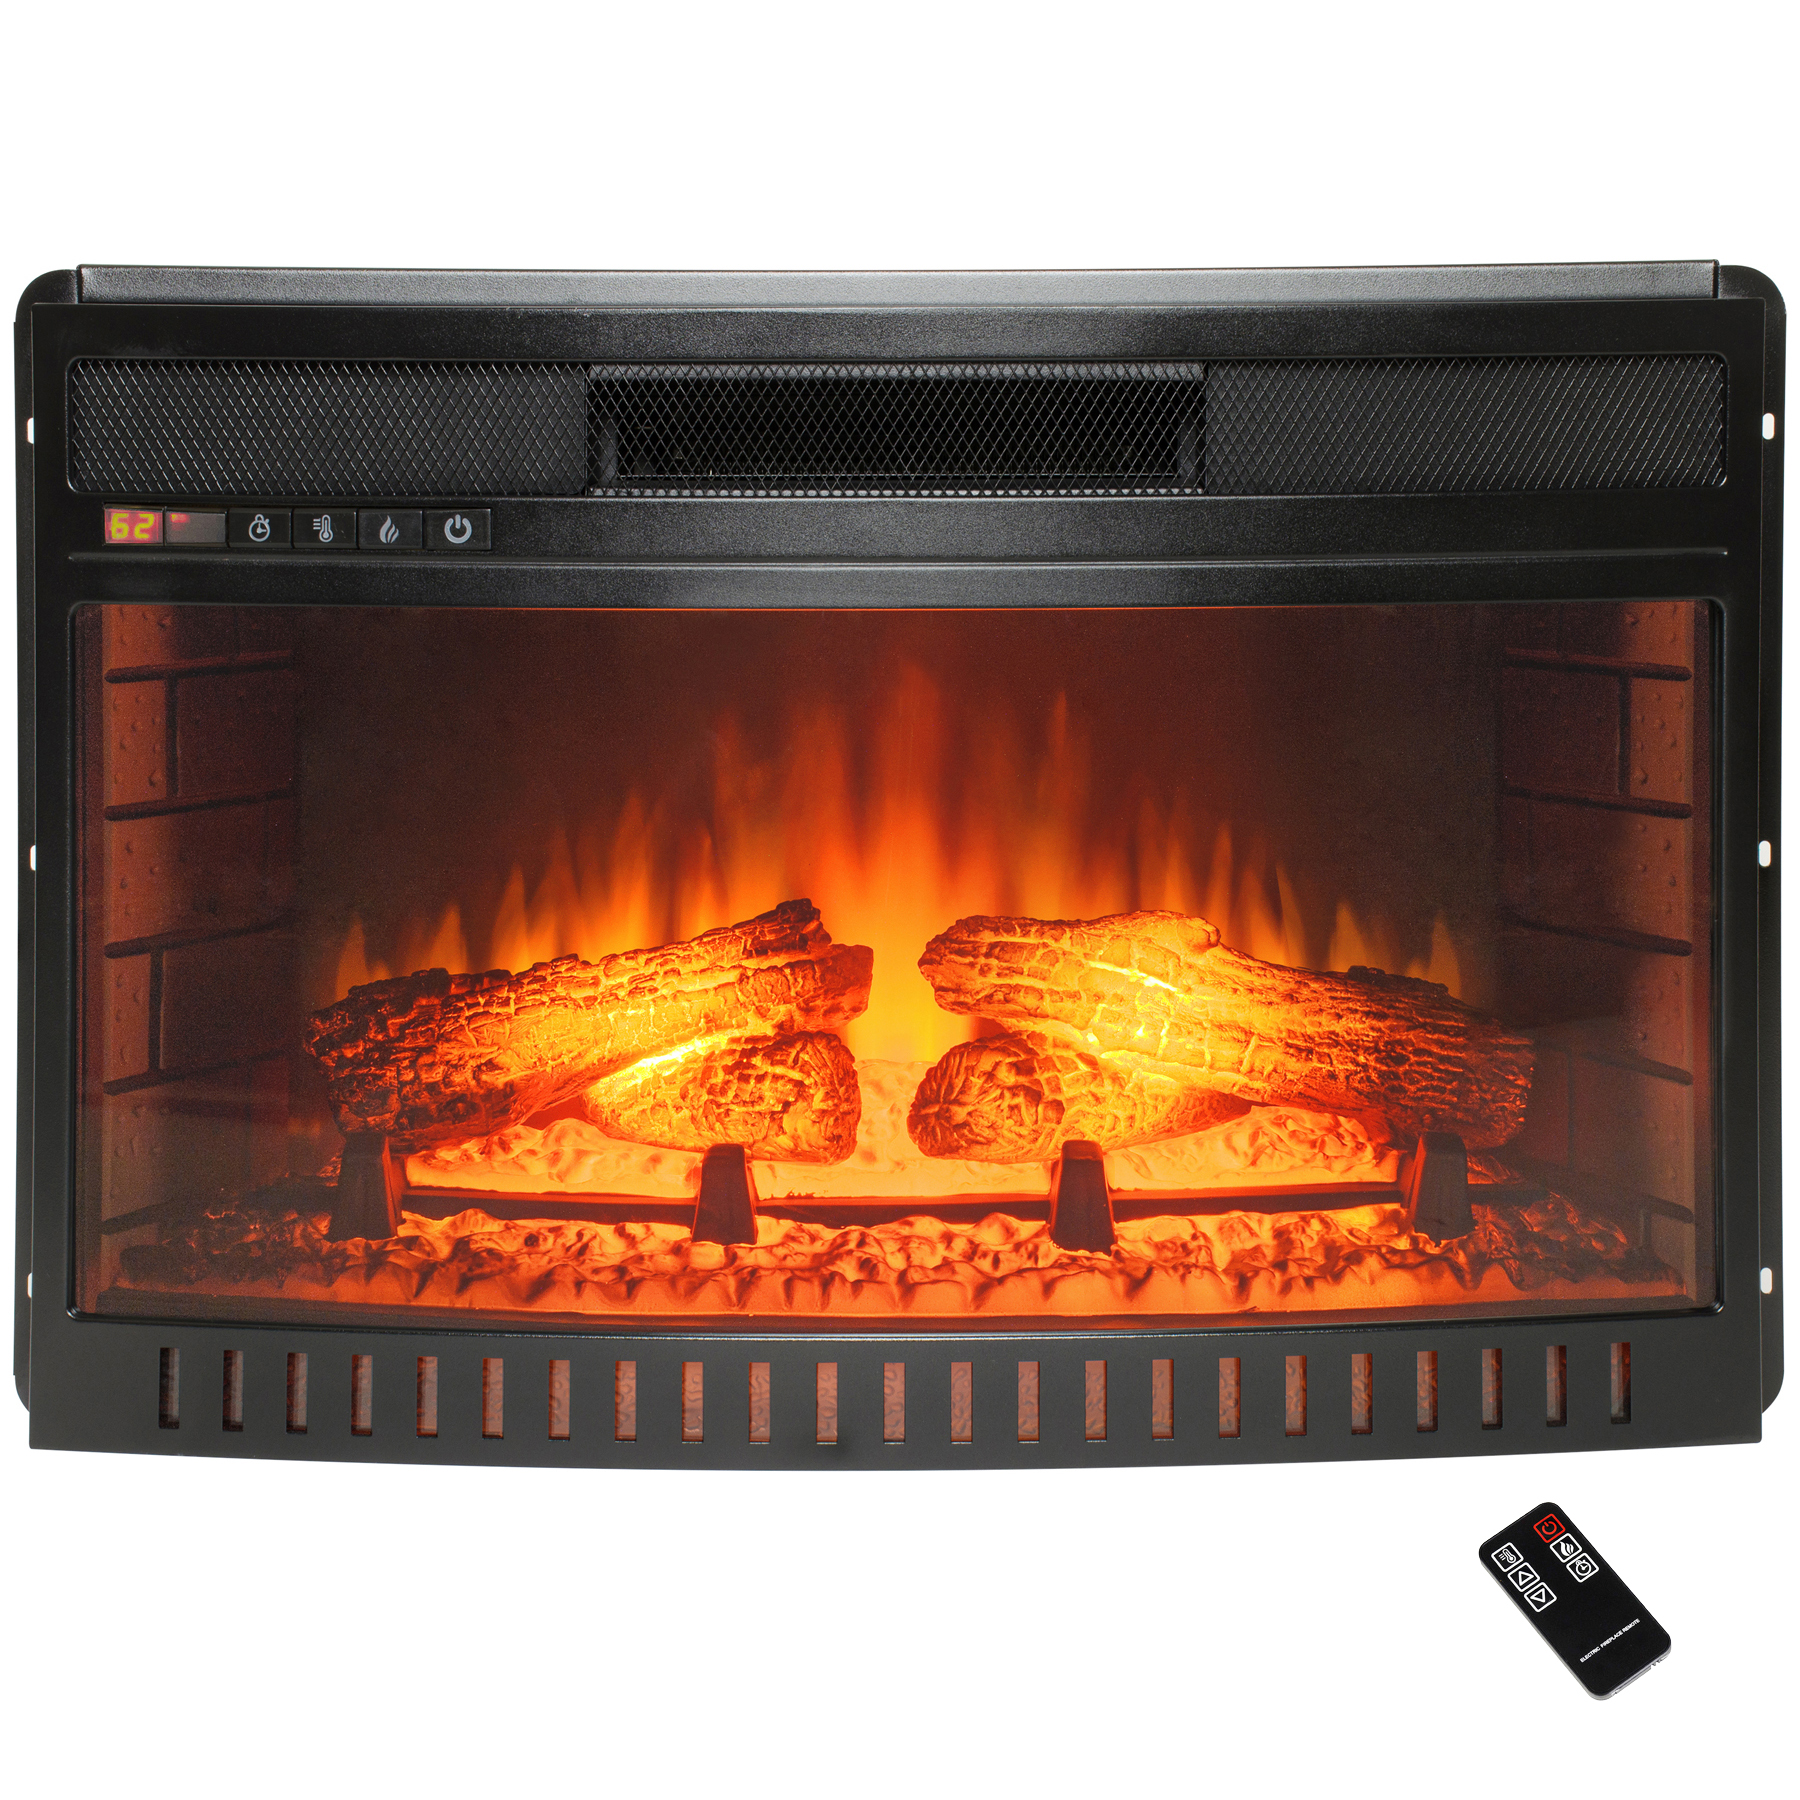 "AKDY FP0056 27"" Freestanding Push Button Control Adjustable Electric Fireplace Heater Stove Insert w/ Remote Control"